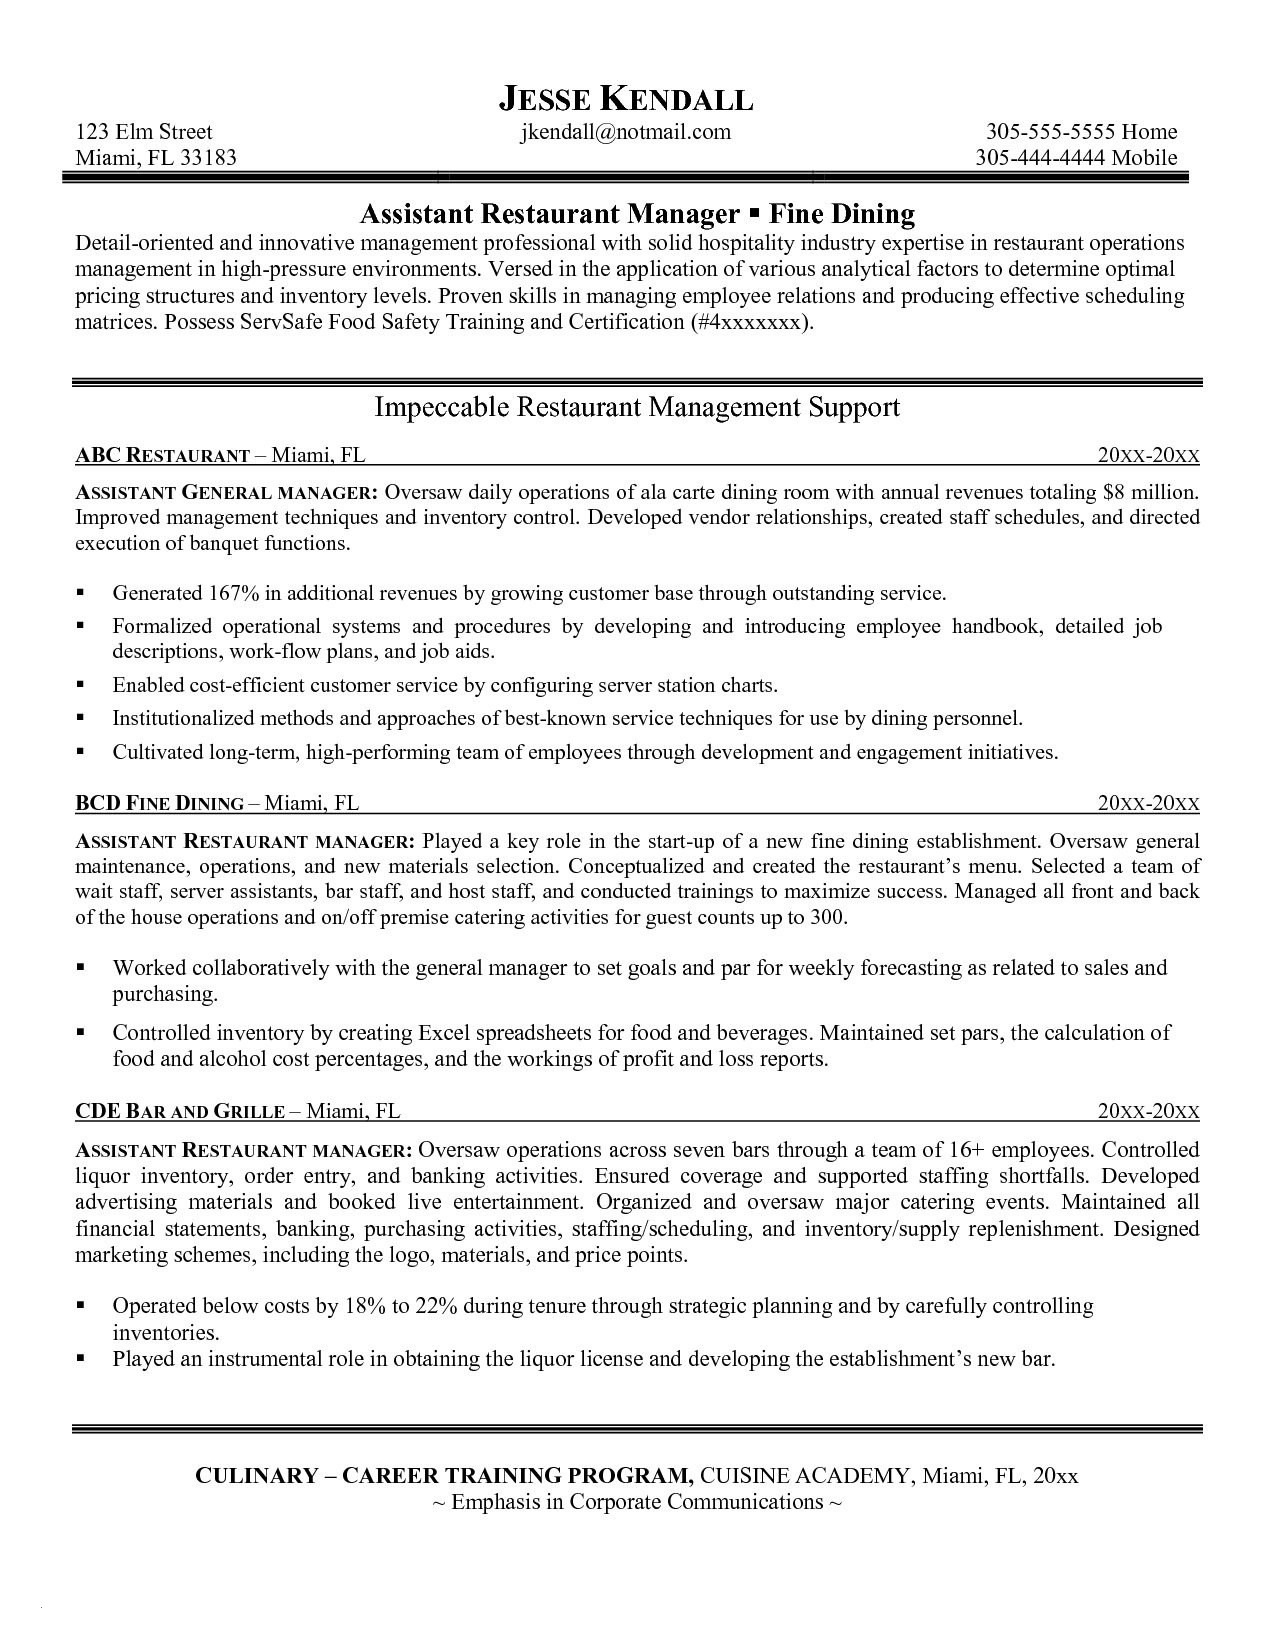 general manager resume sample example-Restaurant Manager Resume Template Unique Lovely Grapher Resume Sample Beautiful Resume Quotes 0d assistant 6-g